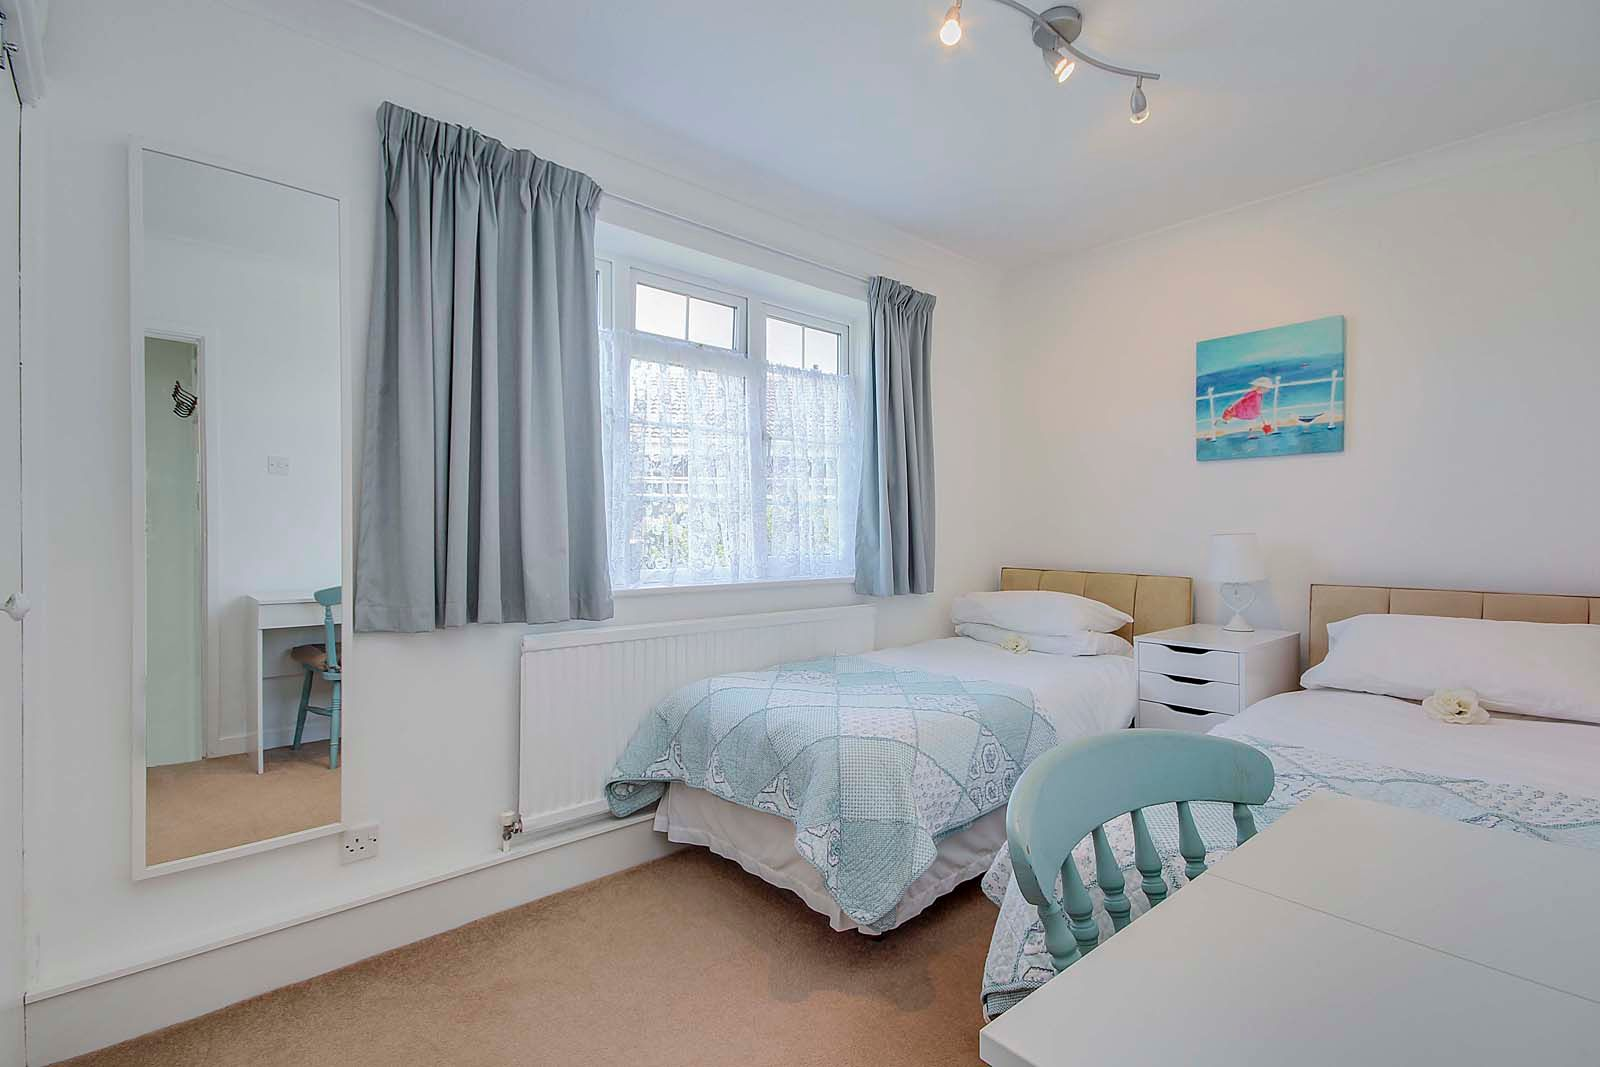 2 bed  for sale in Ferring Marine  - Property Image 8